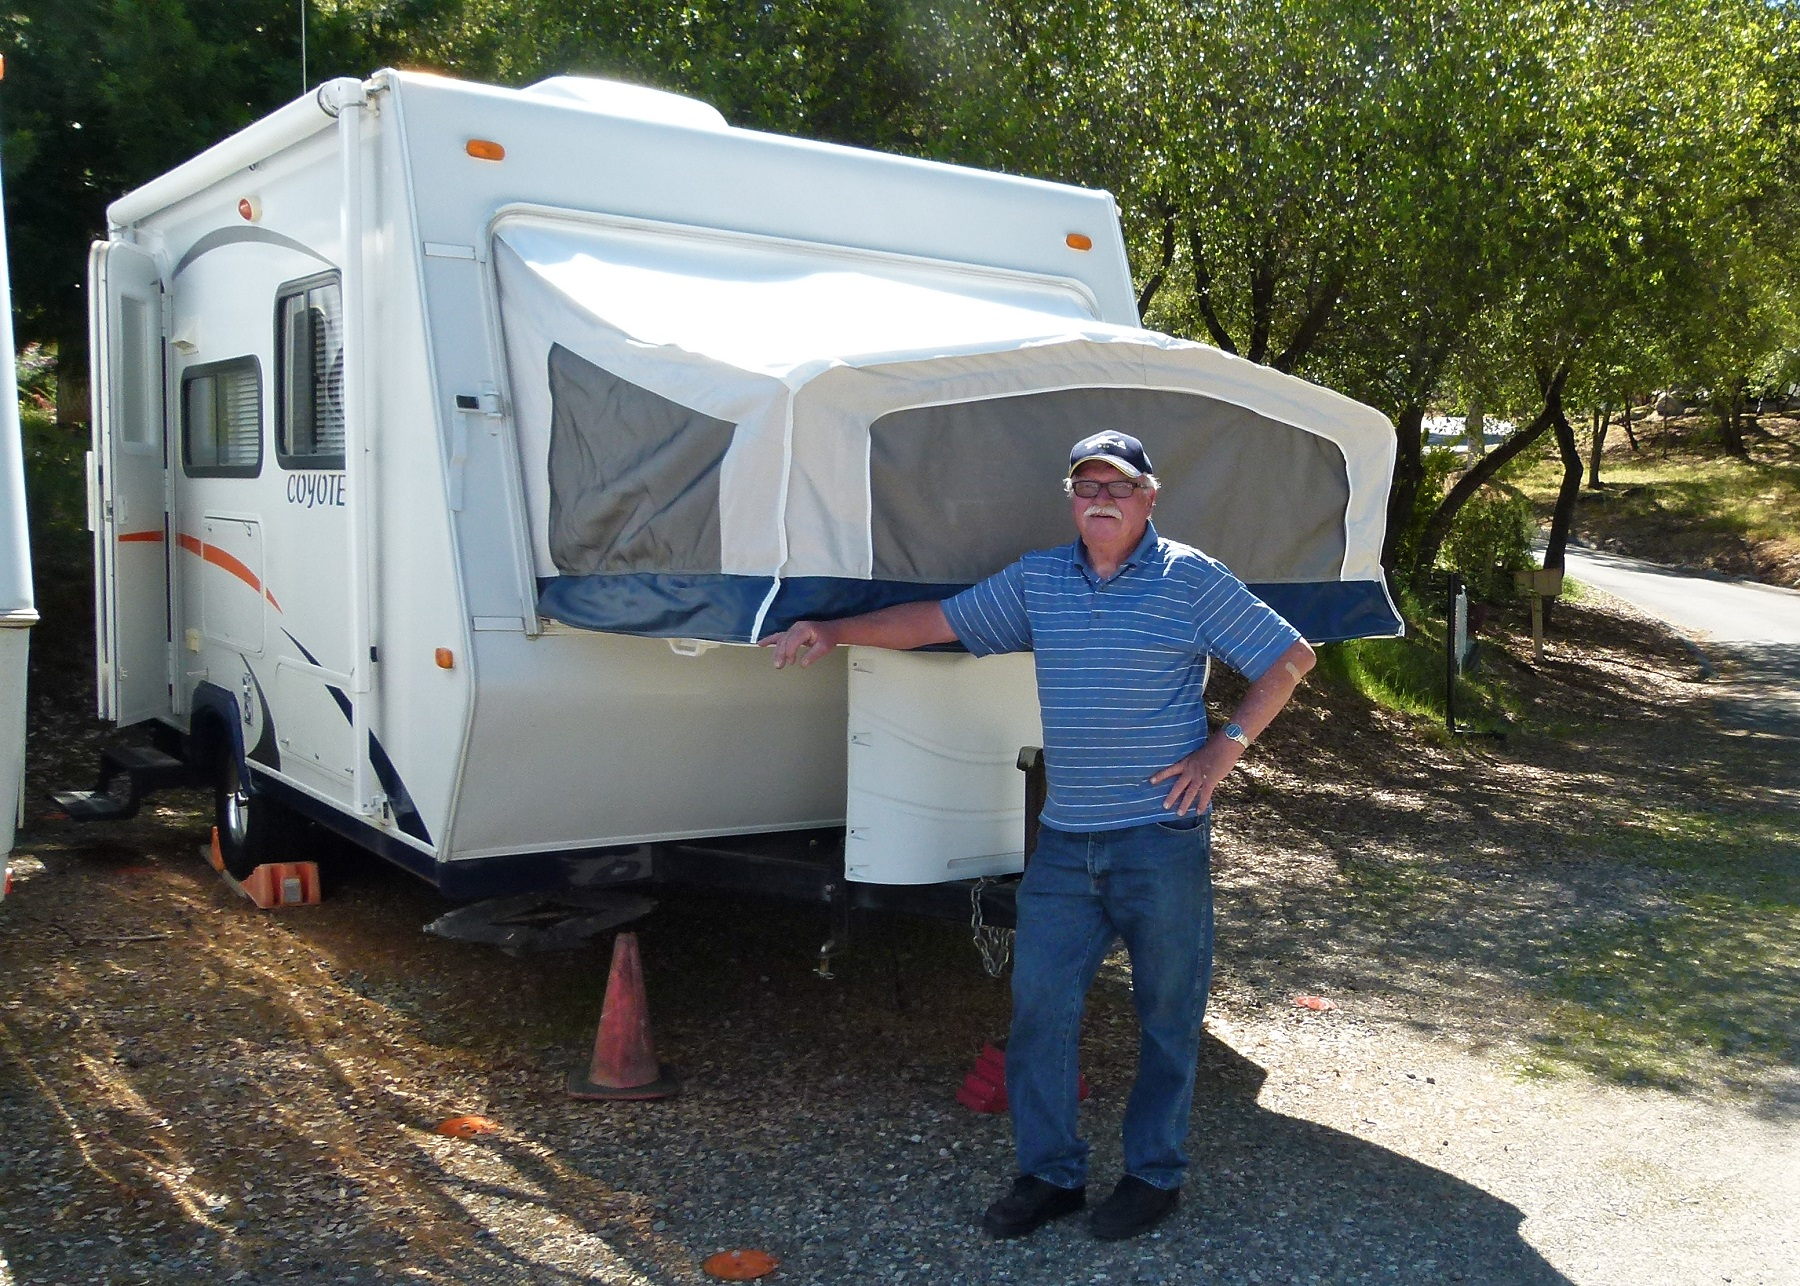 Expandable Trailers Are Lighter Than The Conventional Travel Trailer And Often More Affordable Credit